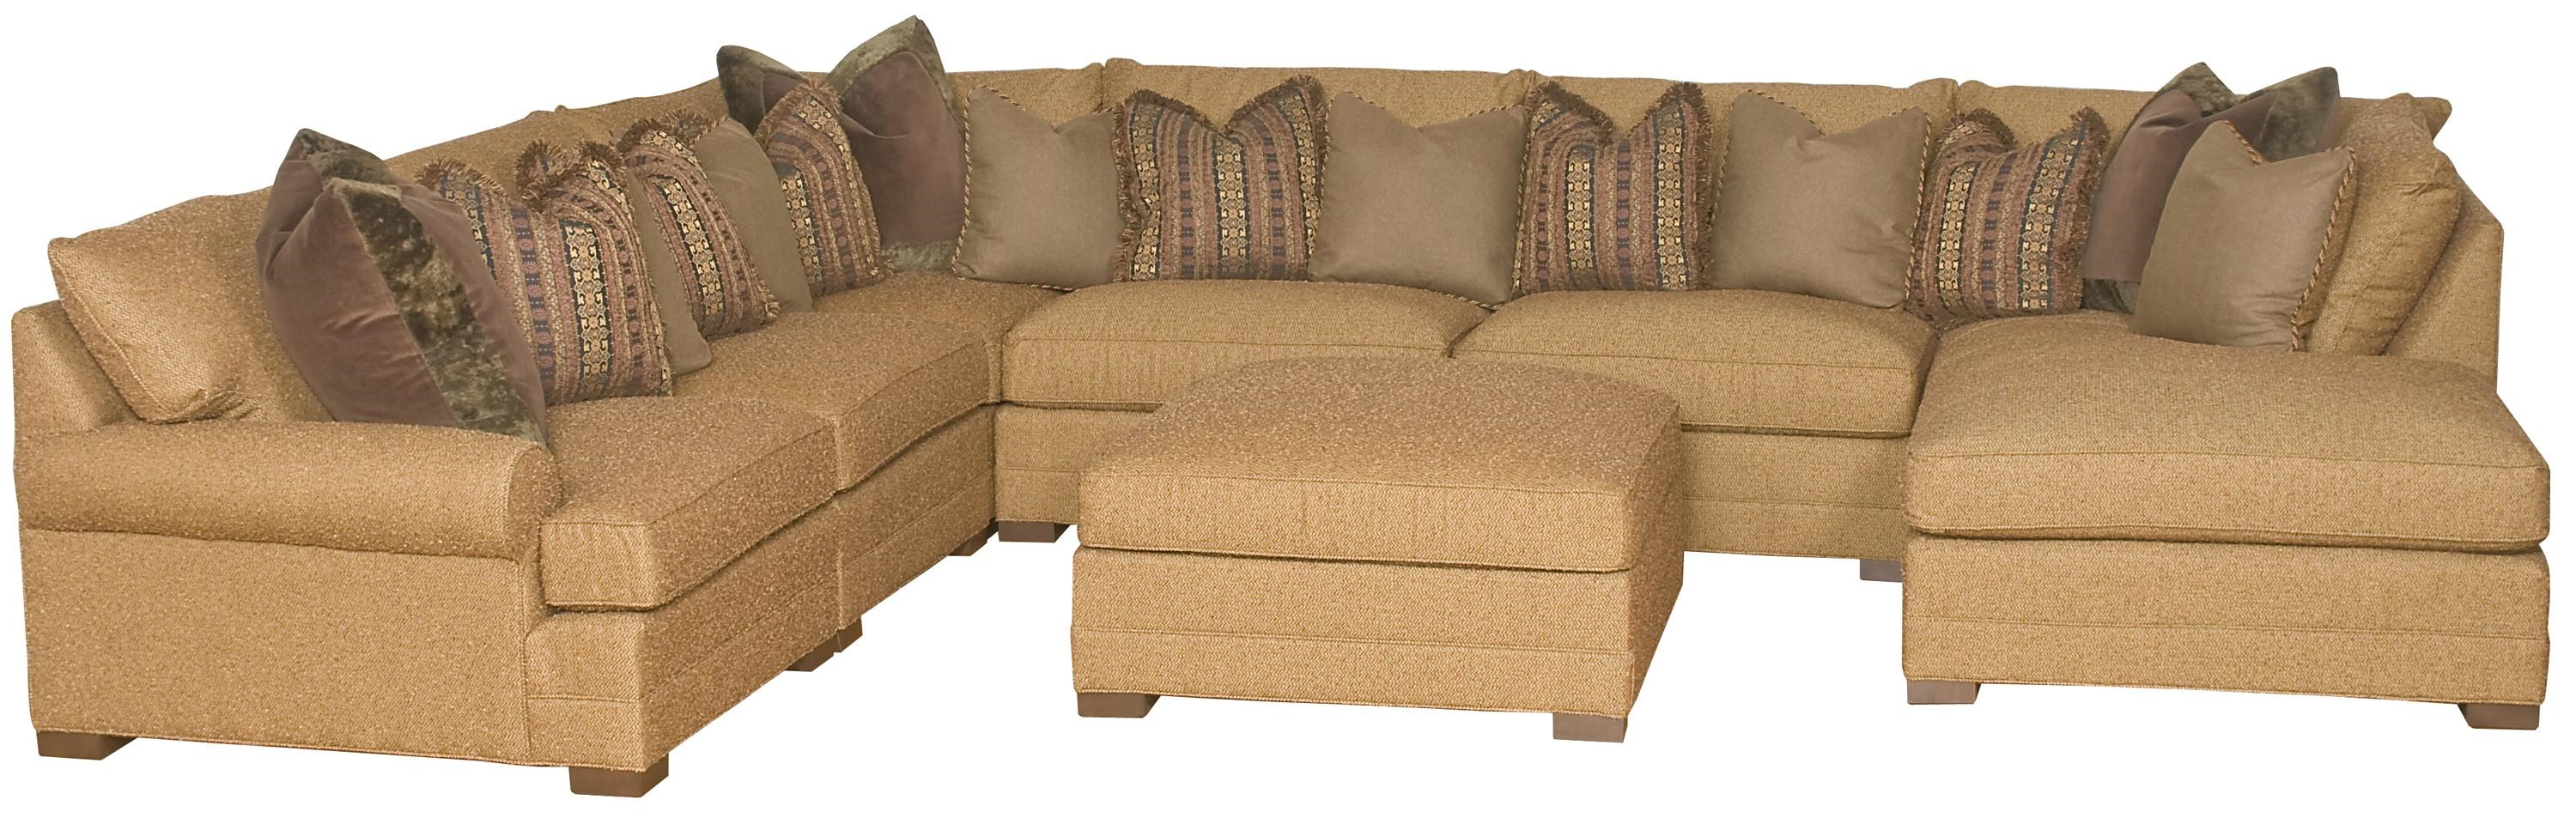 sectional couch inspiring best couches exquisite with size the shaped image of u chaise leather sofa full